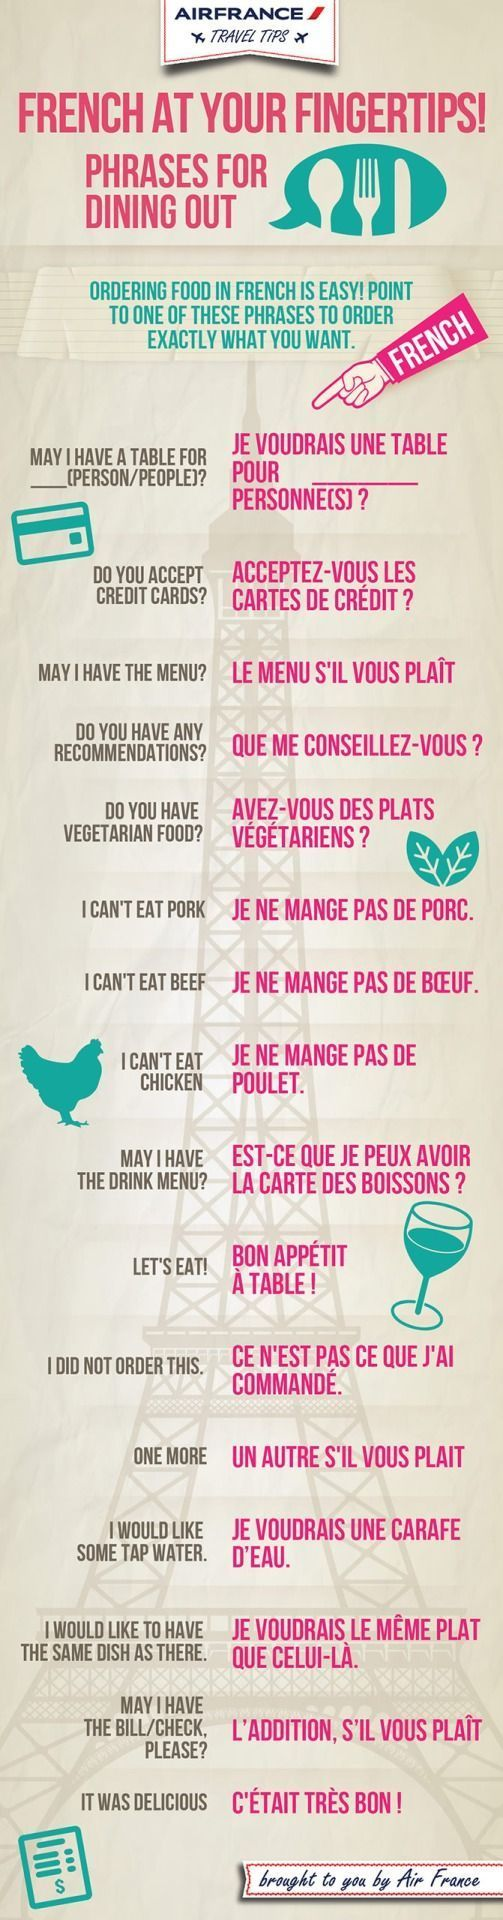 """polyglotman: lefrancaisetvous: Phrases for dining out """"I would like to have the same dish as there"""" to me doesn't make much sense. Anyone know what they're trying to say? I'm an English native and that looks """"weird."""" #frenchlanguage"""